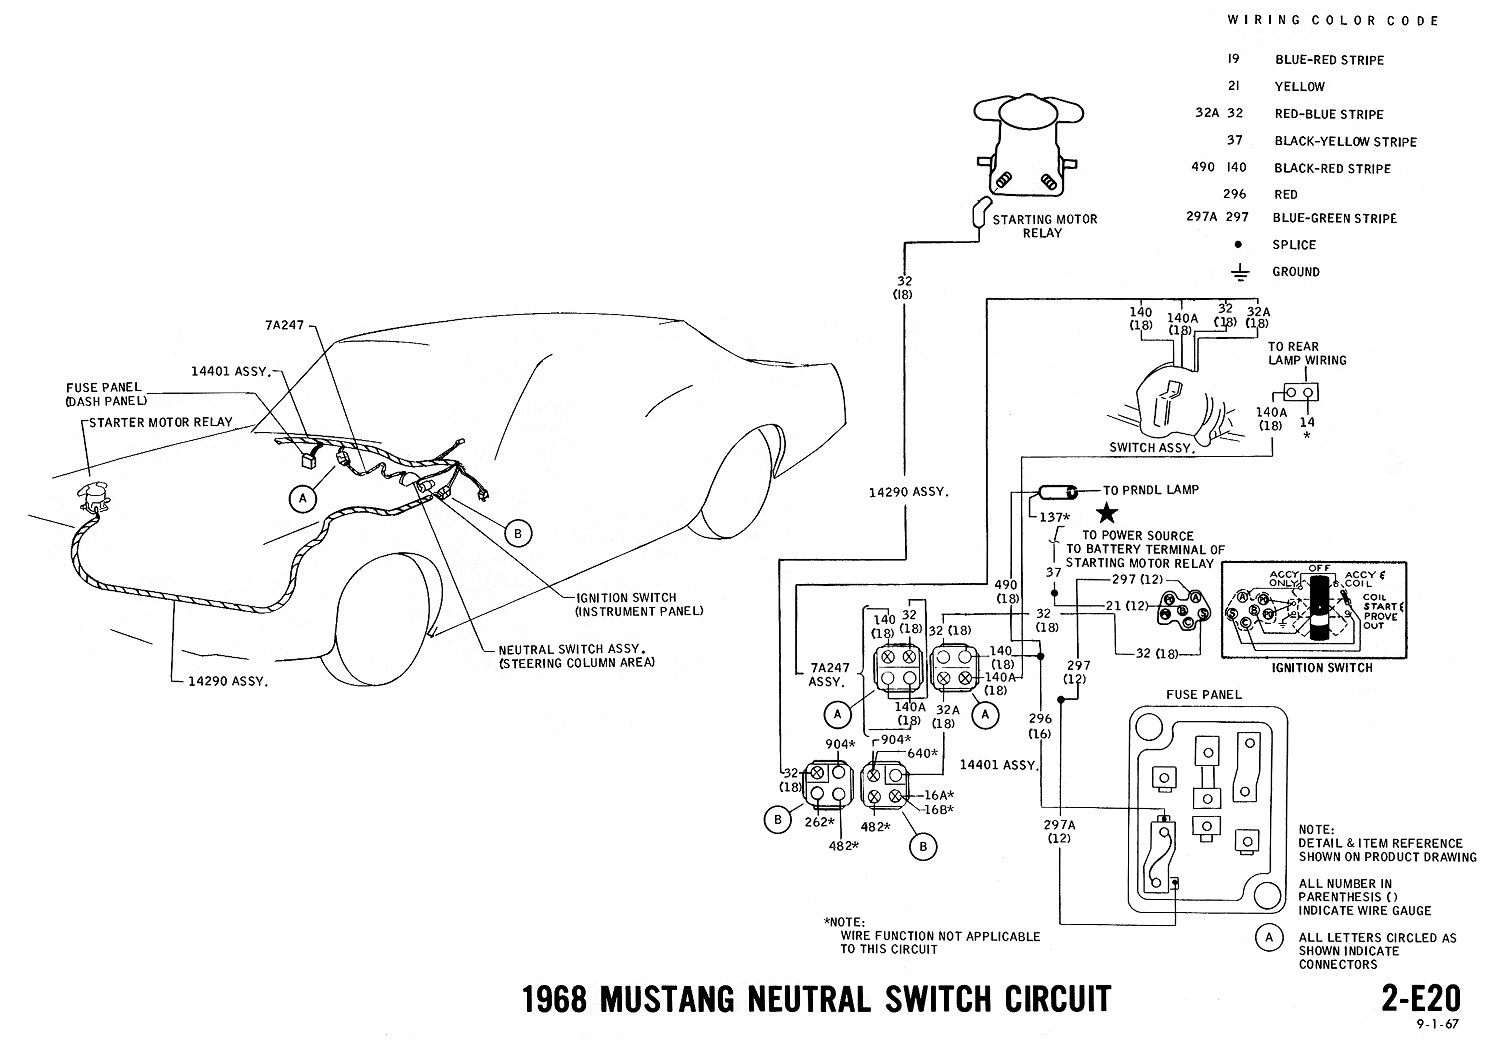 1968 mustang wiring diagrams evolving software1968 master wiring diagram neutral switch [ 1500 x 1040 Pixel ]